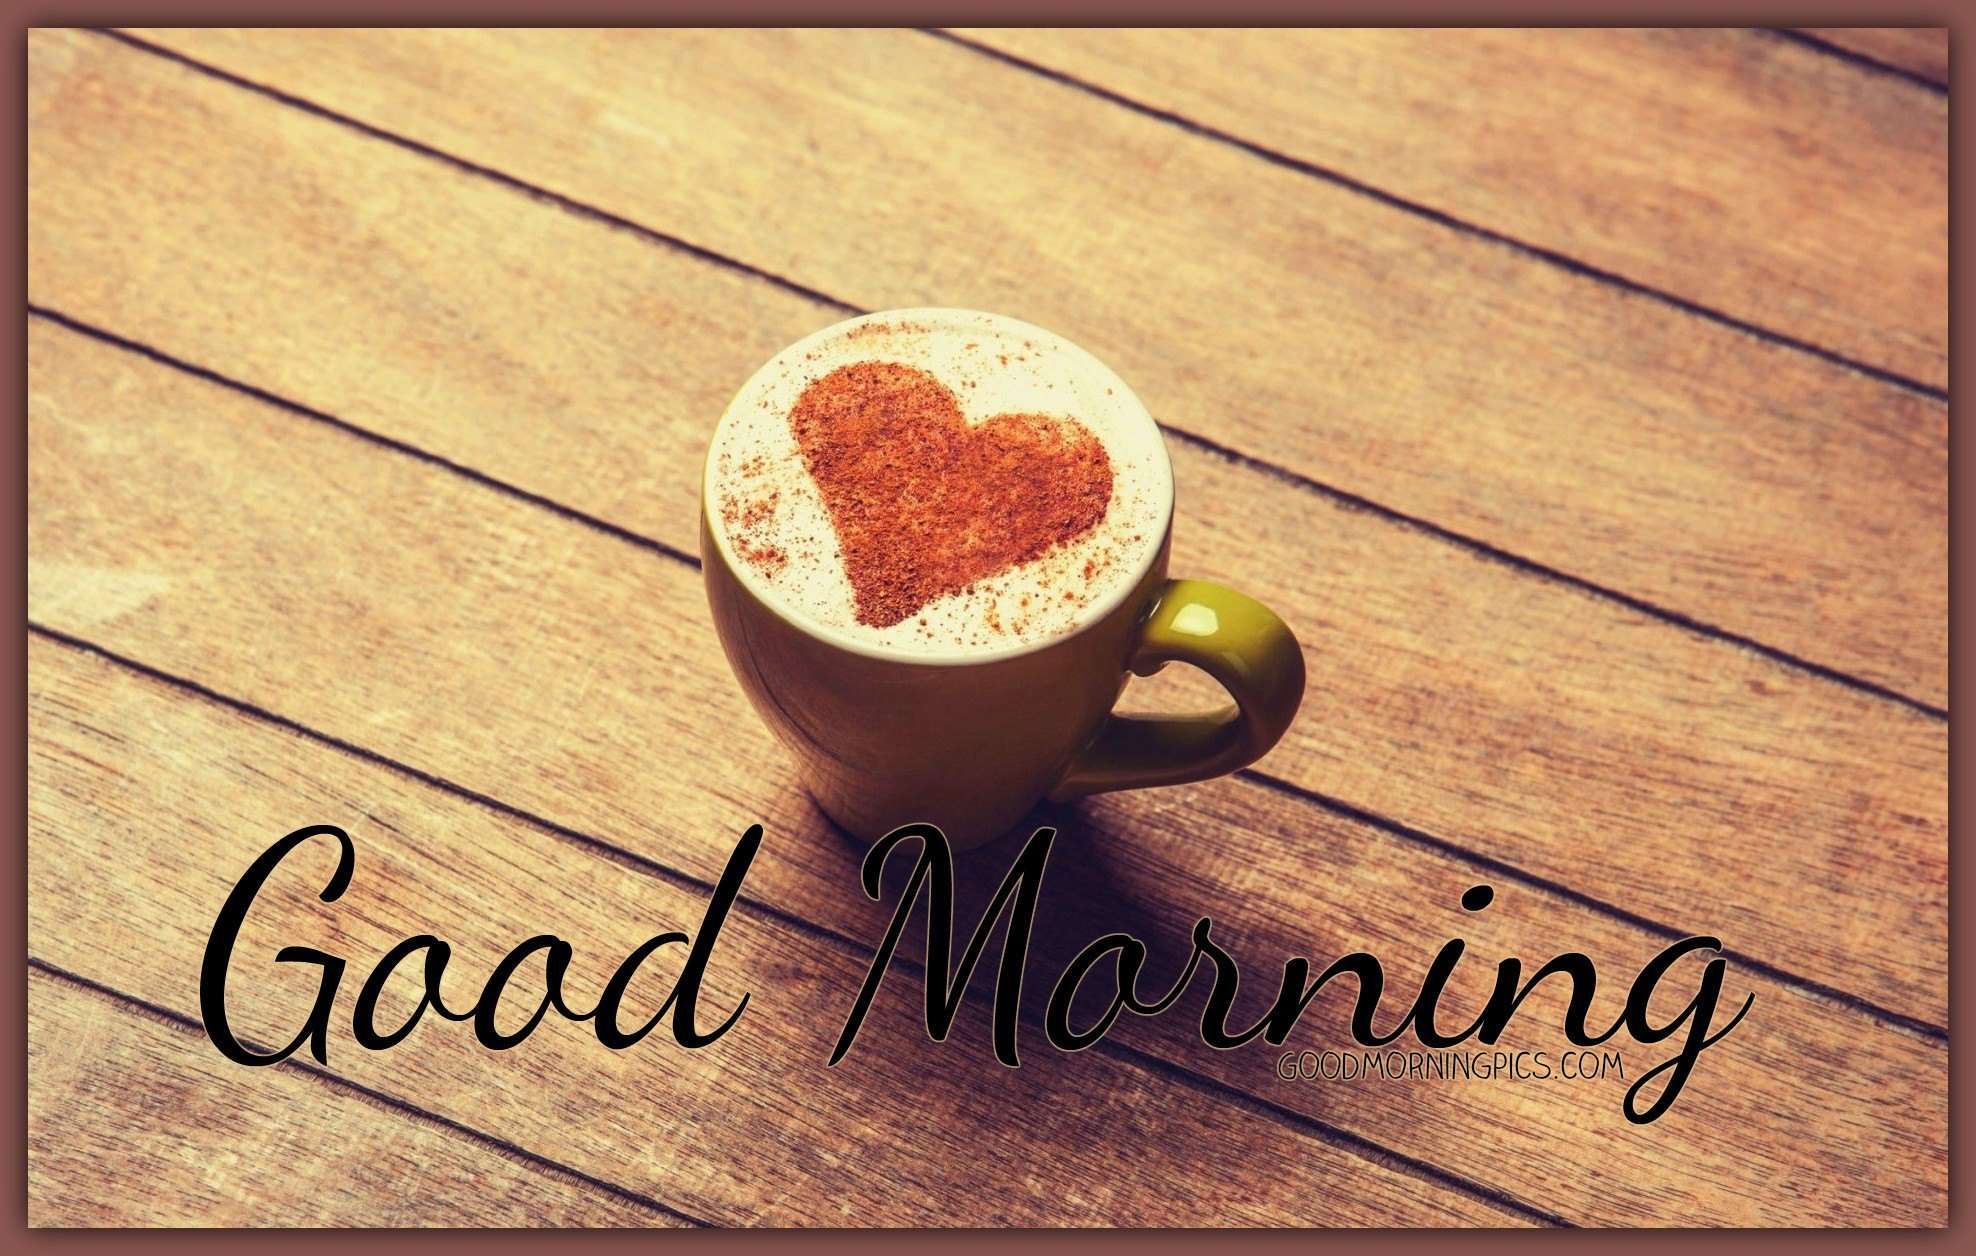 Good Morning Love Msg Wallpaper : Good Morning love coffee and quote goodmorningpics.com